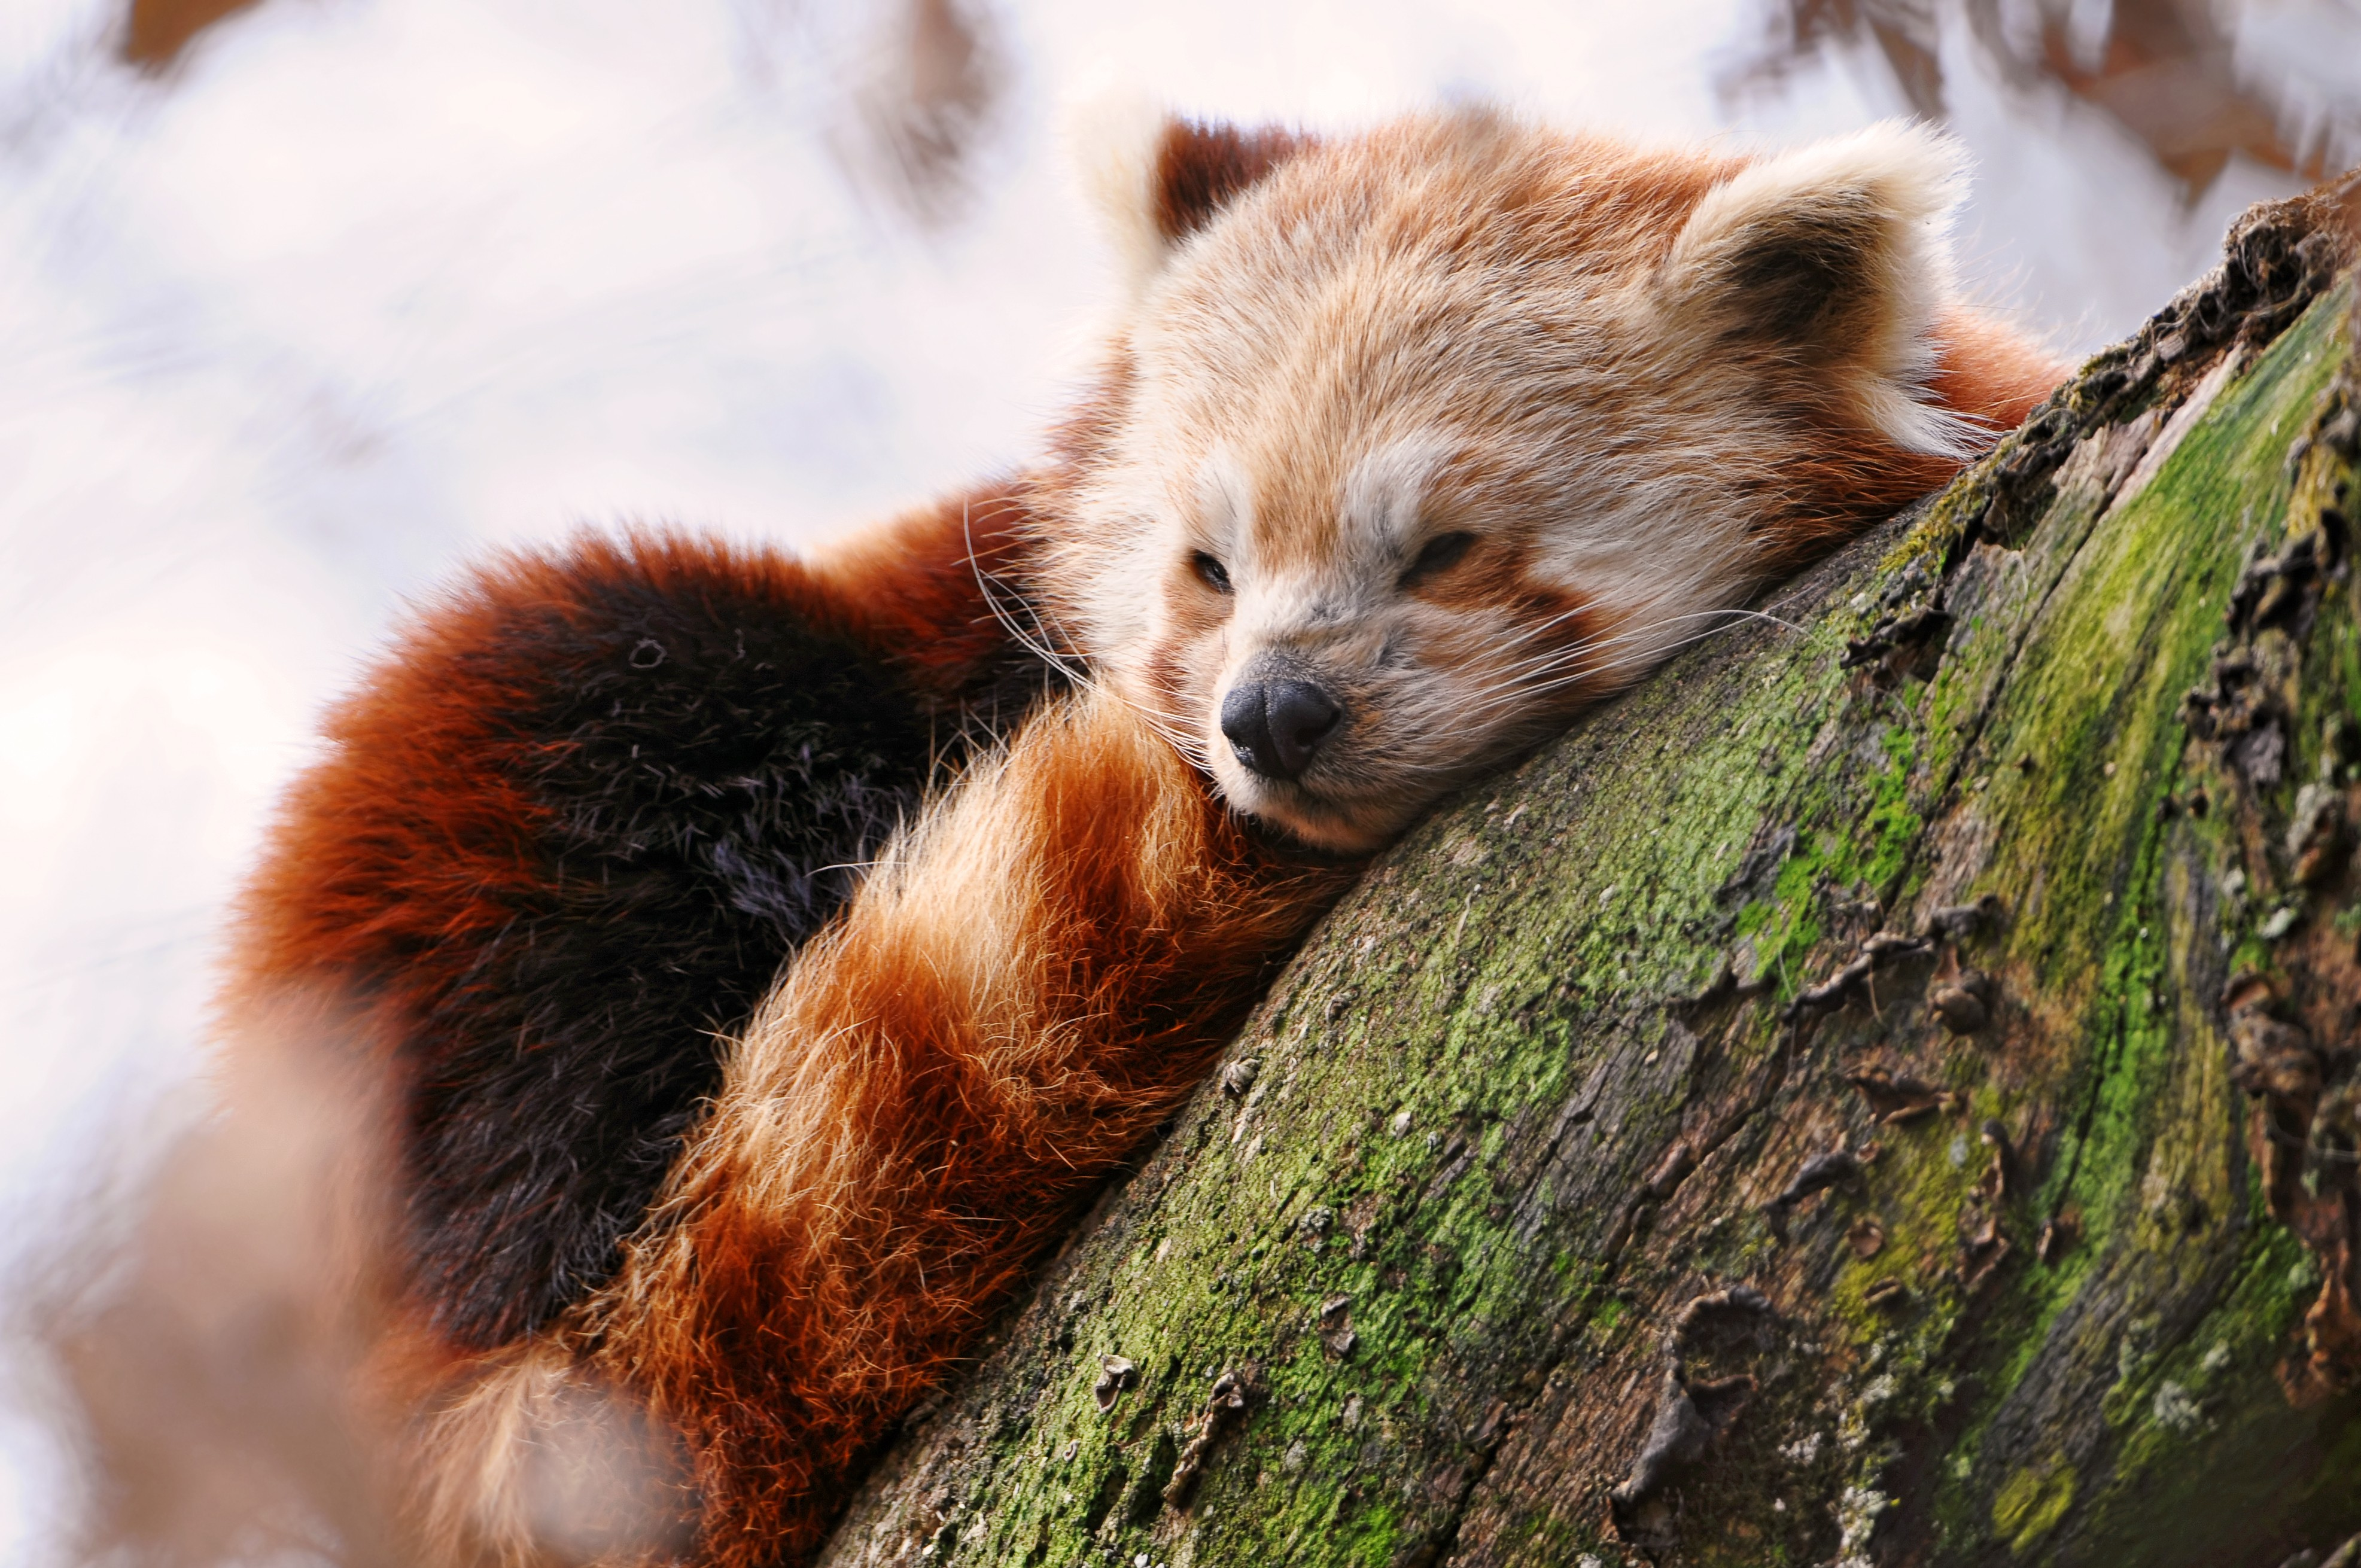 Wallpaper Zombie Girl Wallpaper Red Panda Animals Winter Sleep Zoo Animals 597